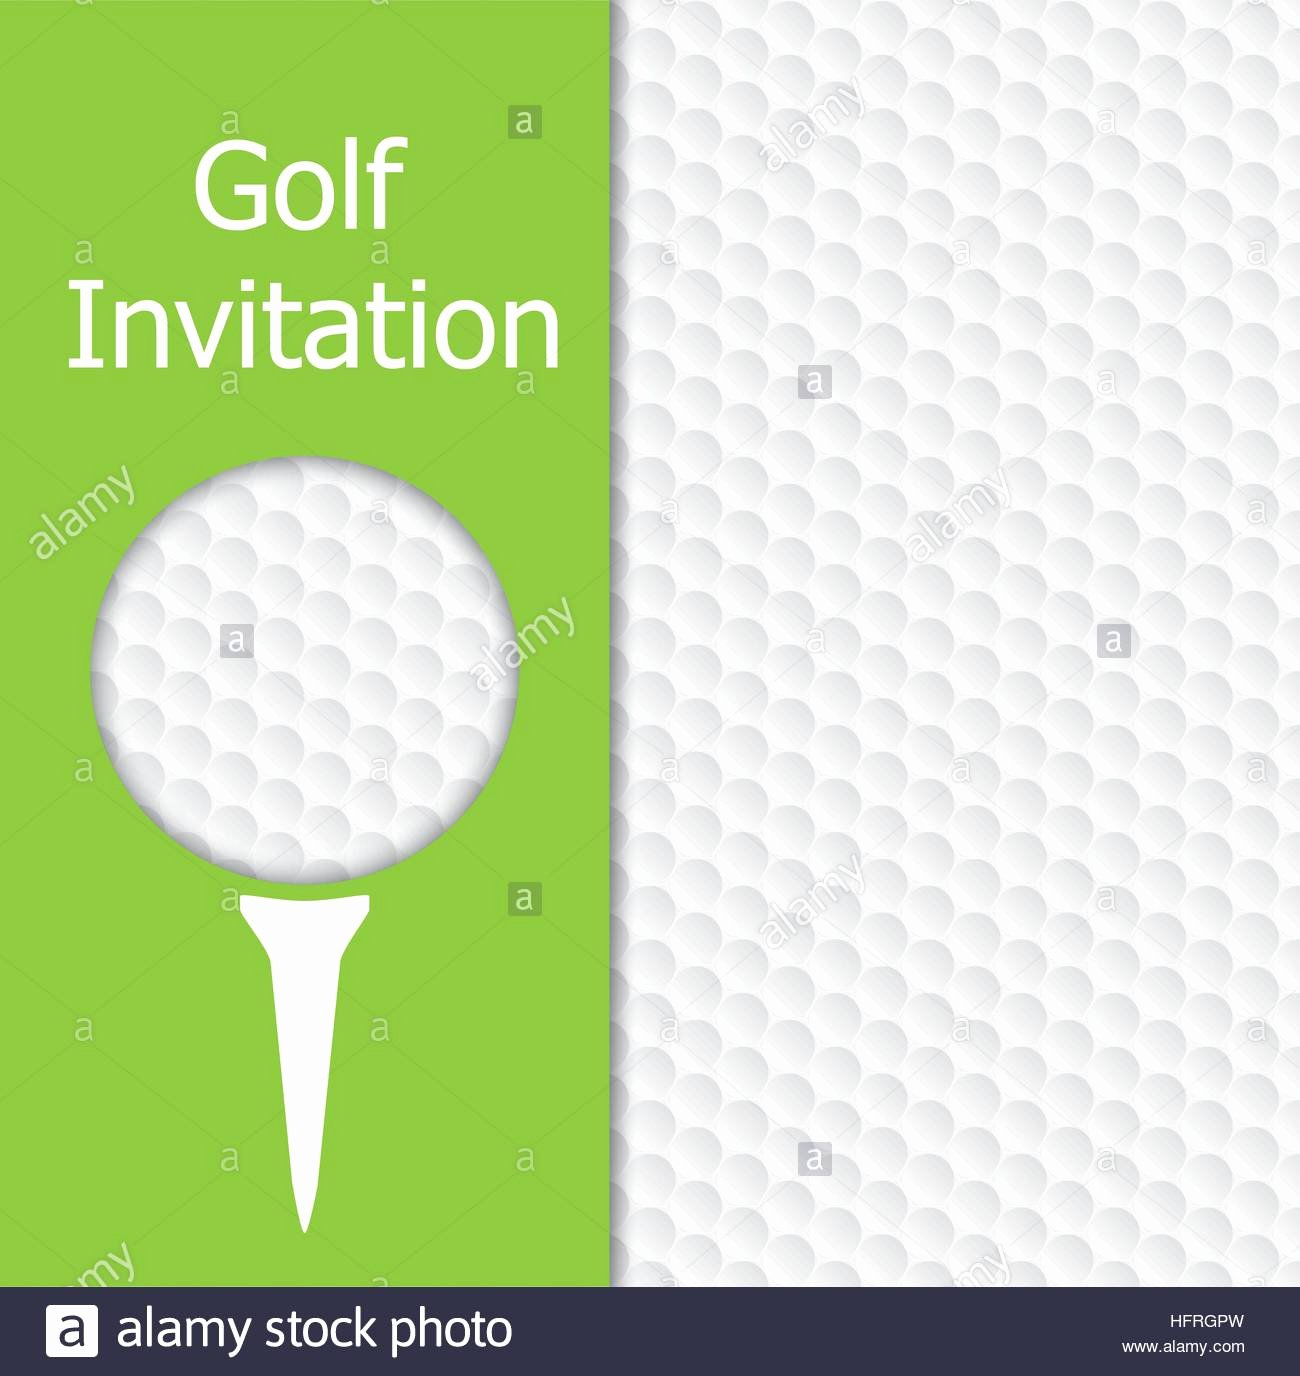 Golf Tee Game Template Luxury Golf tournament Invitation Graphic Design the Design